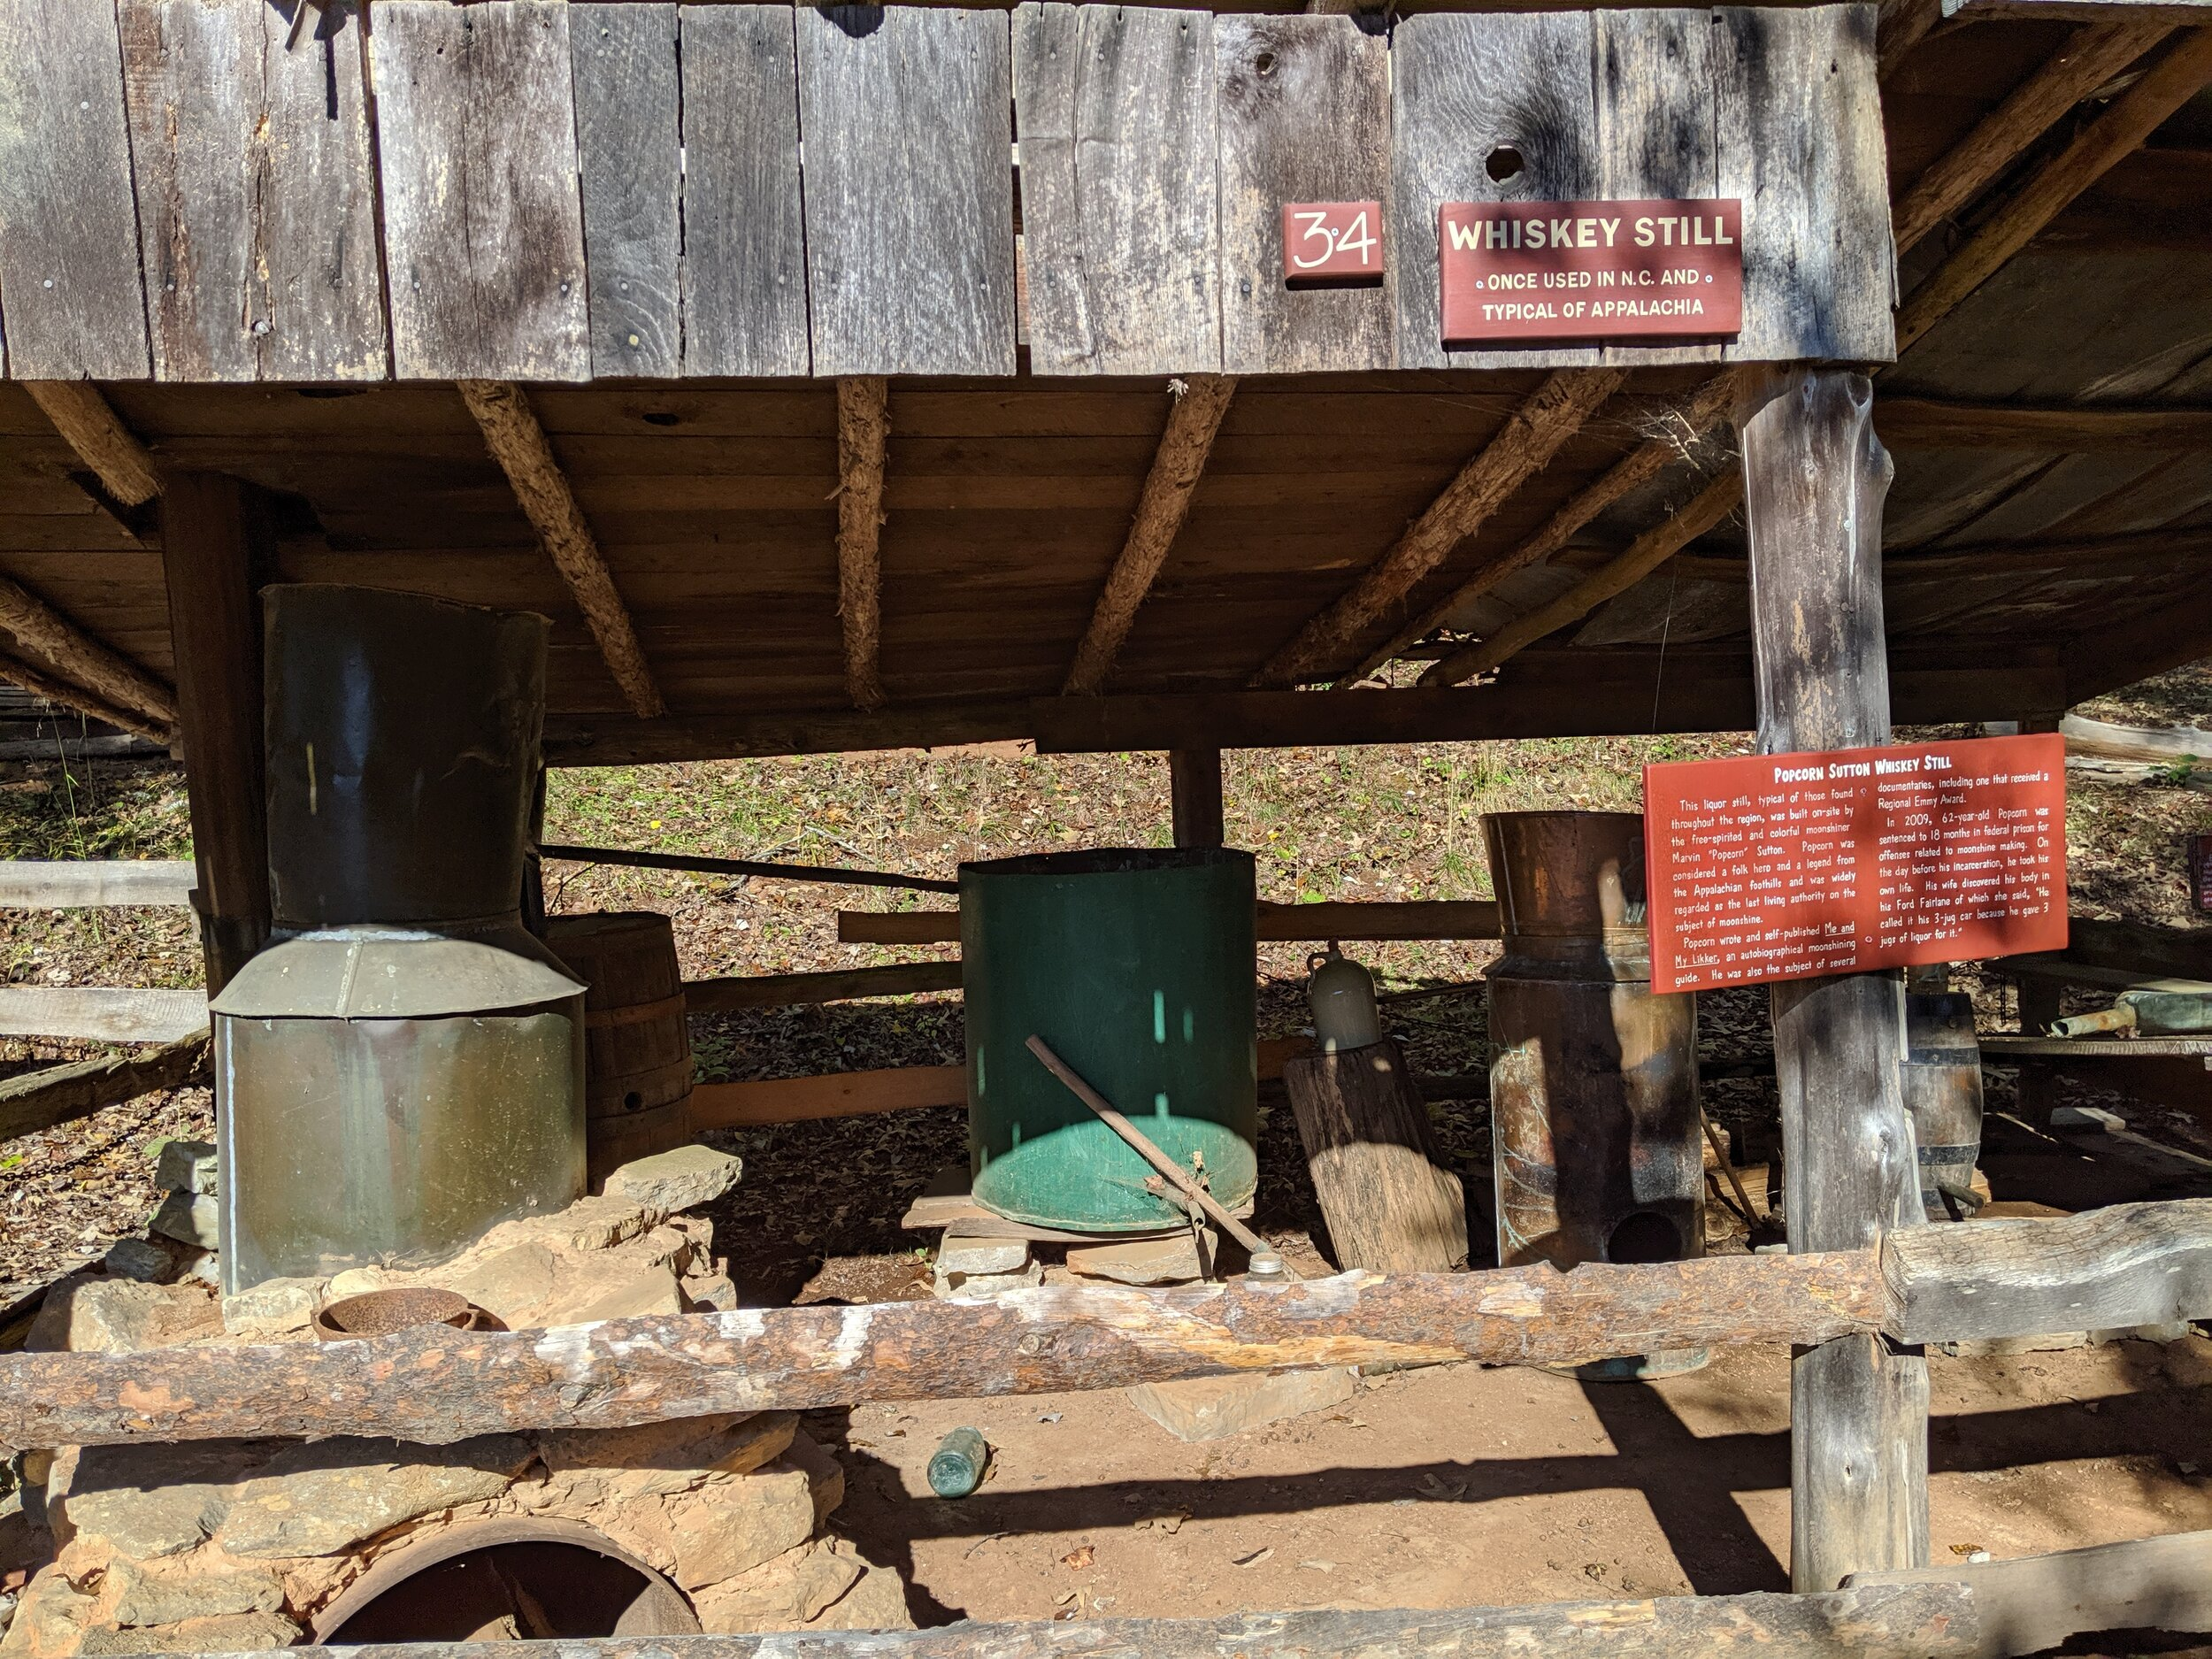 Here's an old moonshine still.